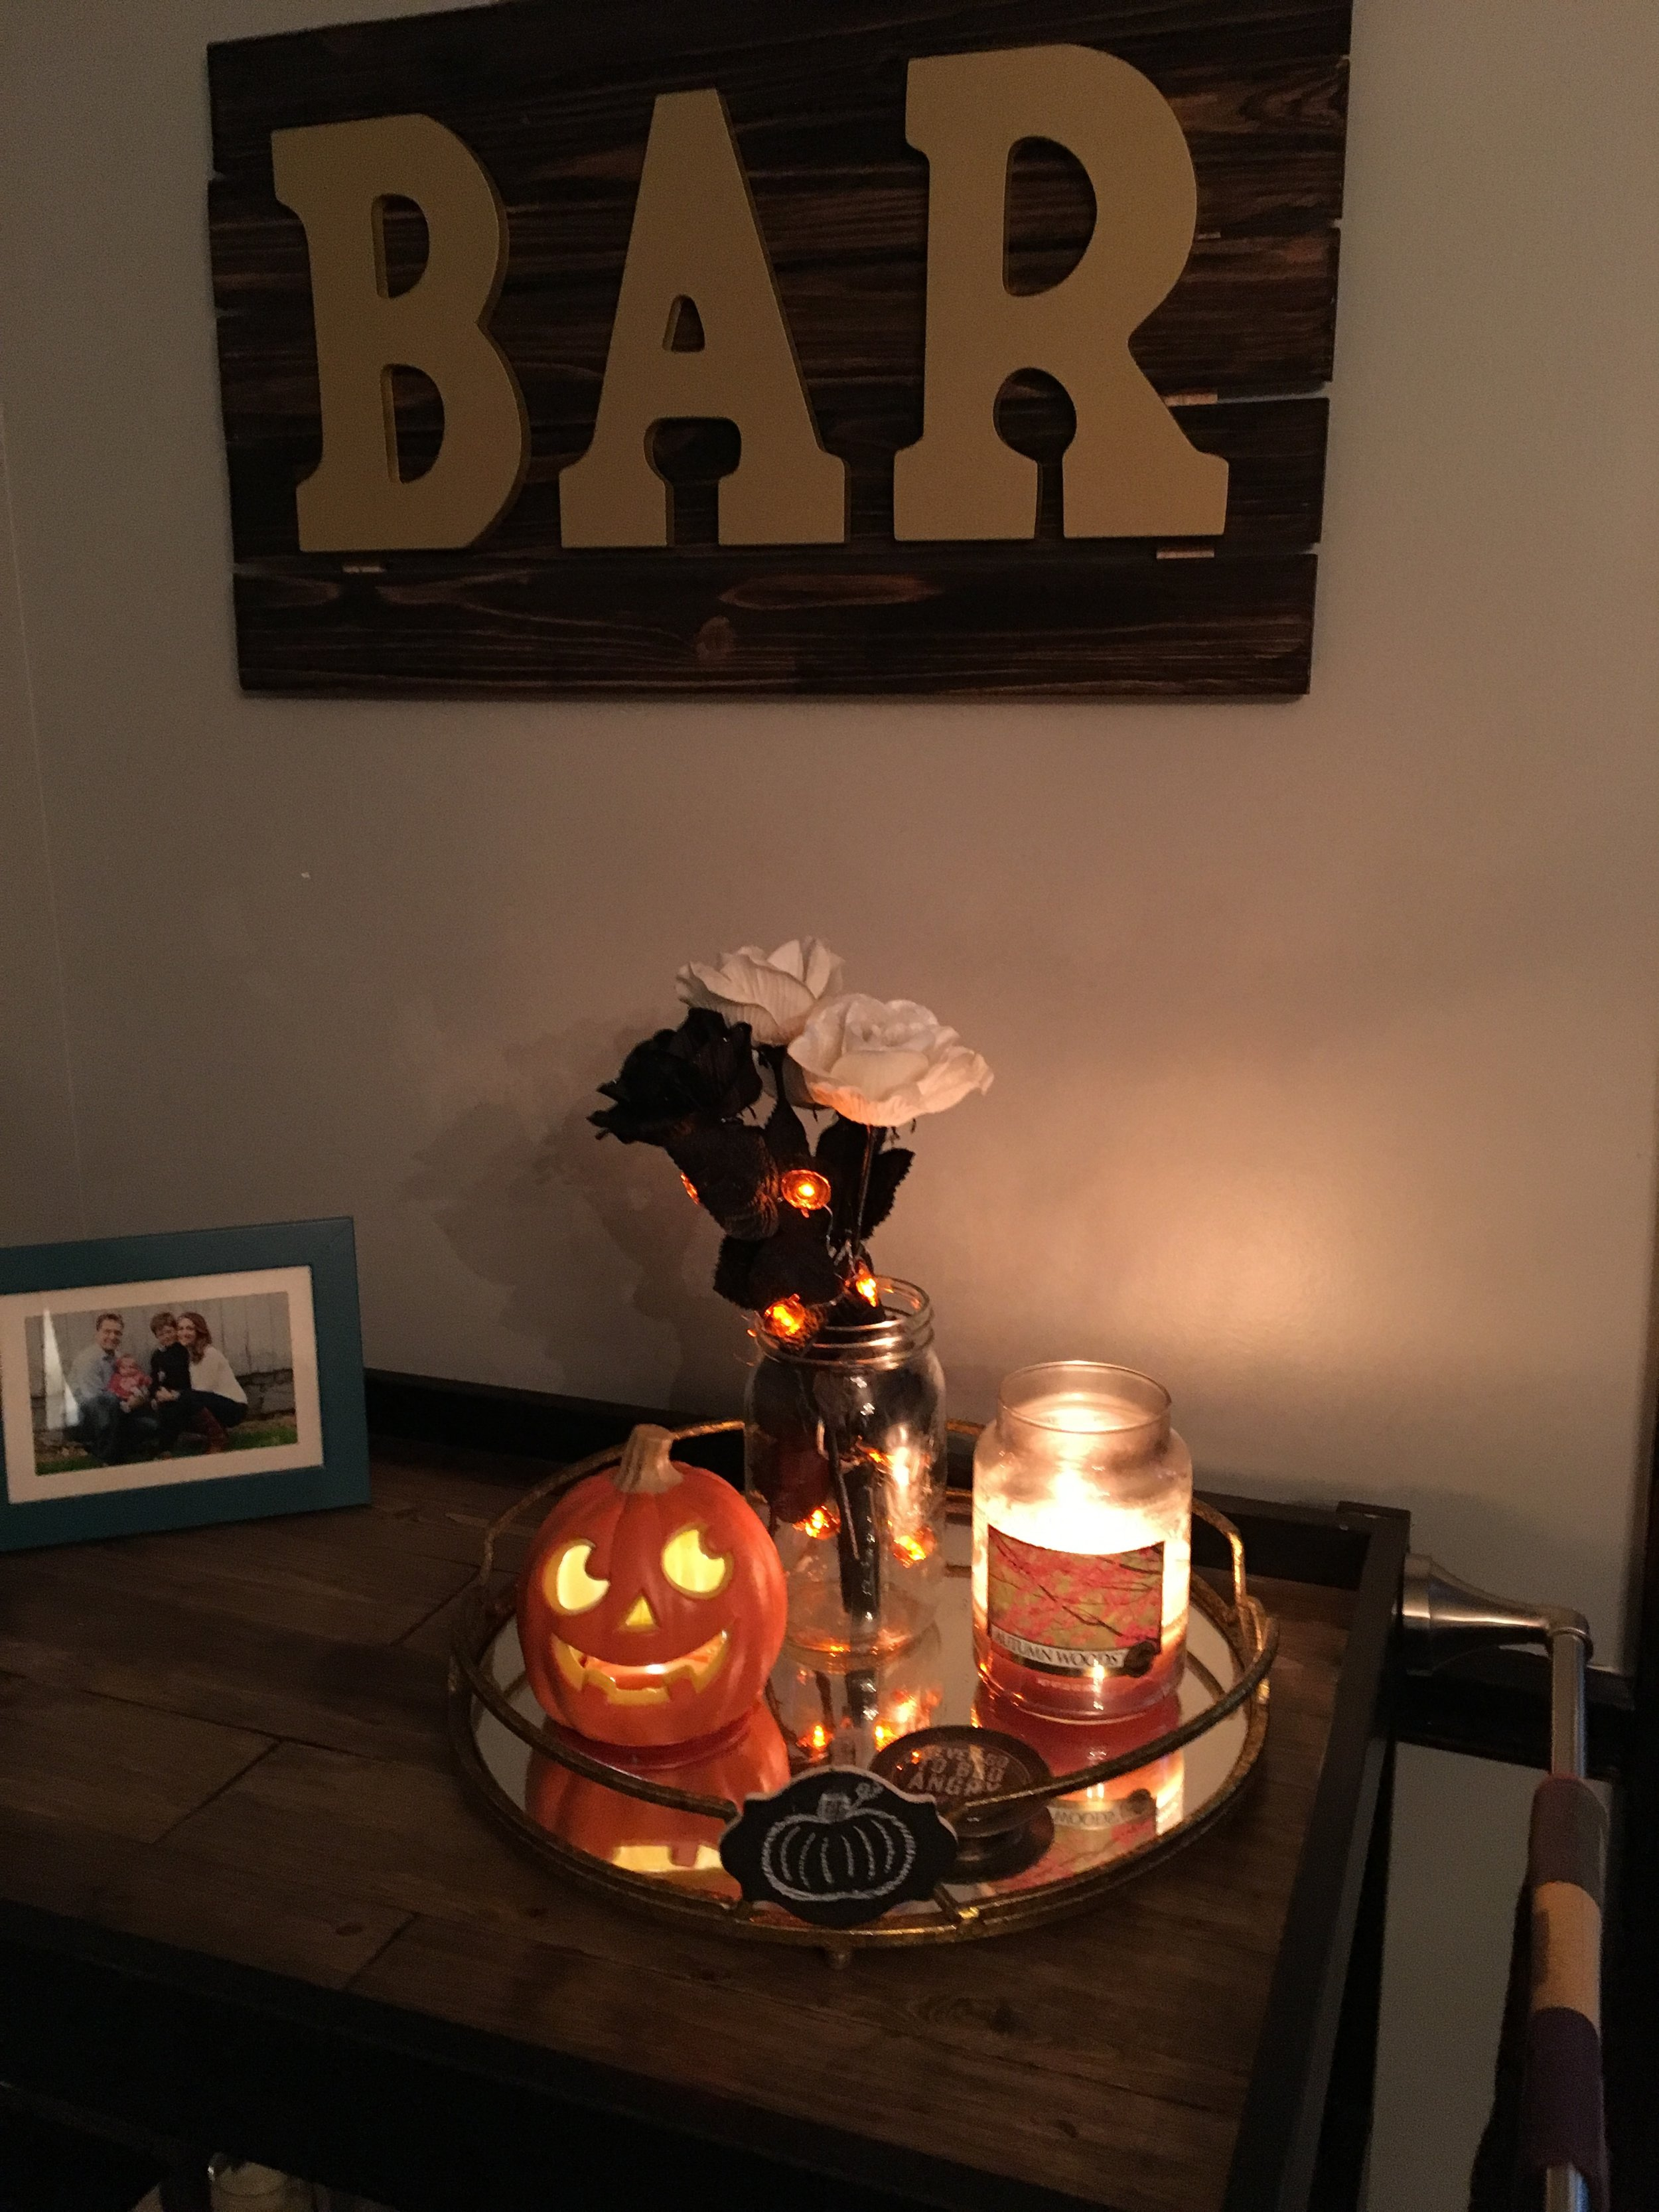 Halloween decorations - I LOVE Halloween by the way!